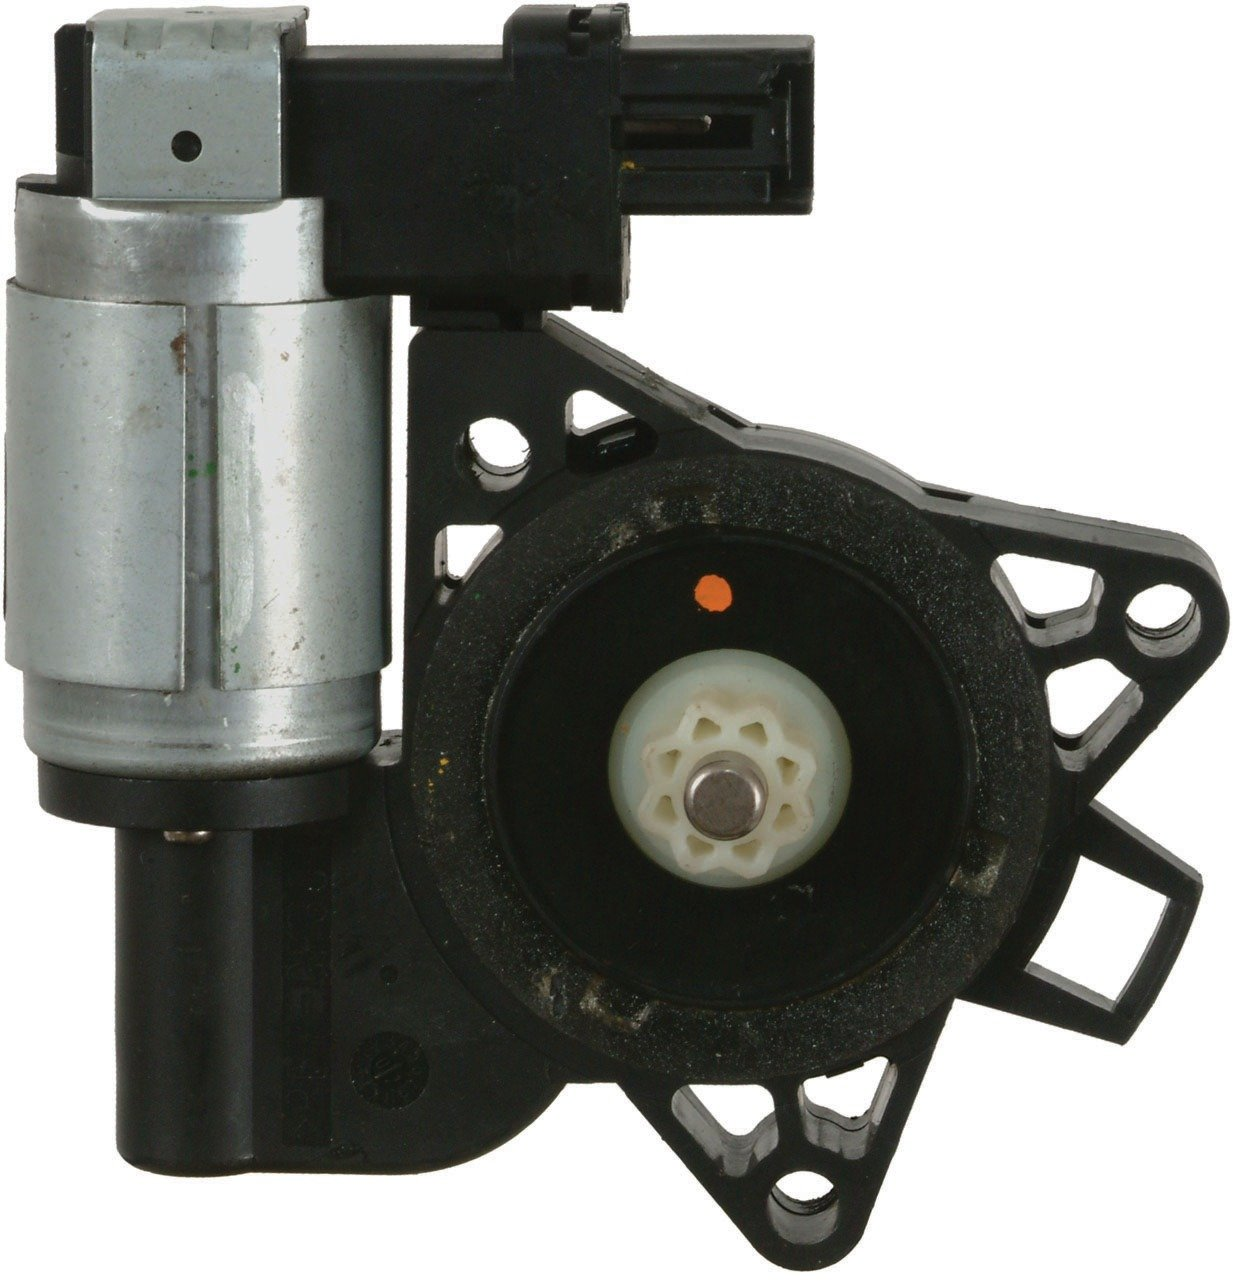 A1 Cardone 47-17001 Remanufactured Window Lift Motor